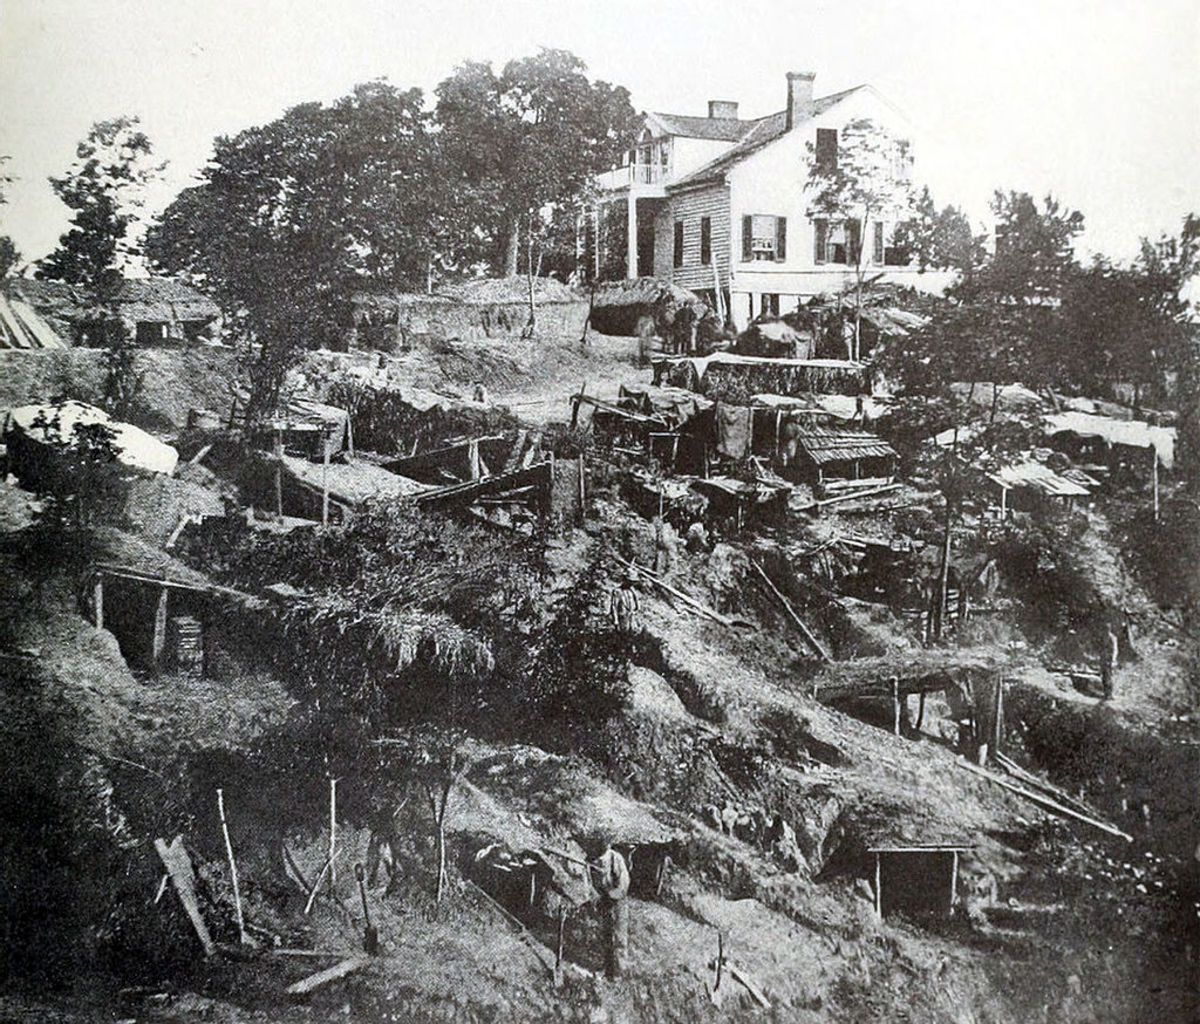 During the battle for Vicksburg civilians were forced to live in caves to survive from snipers and artillery fire.